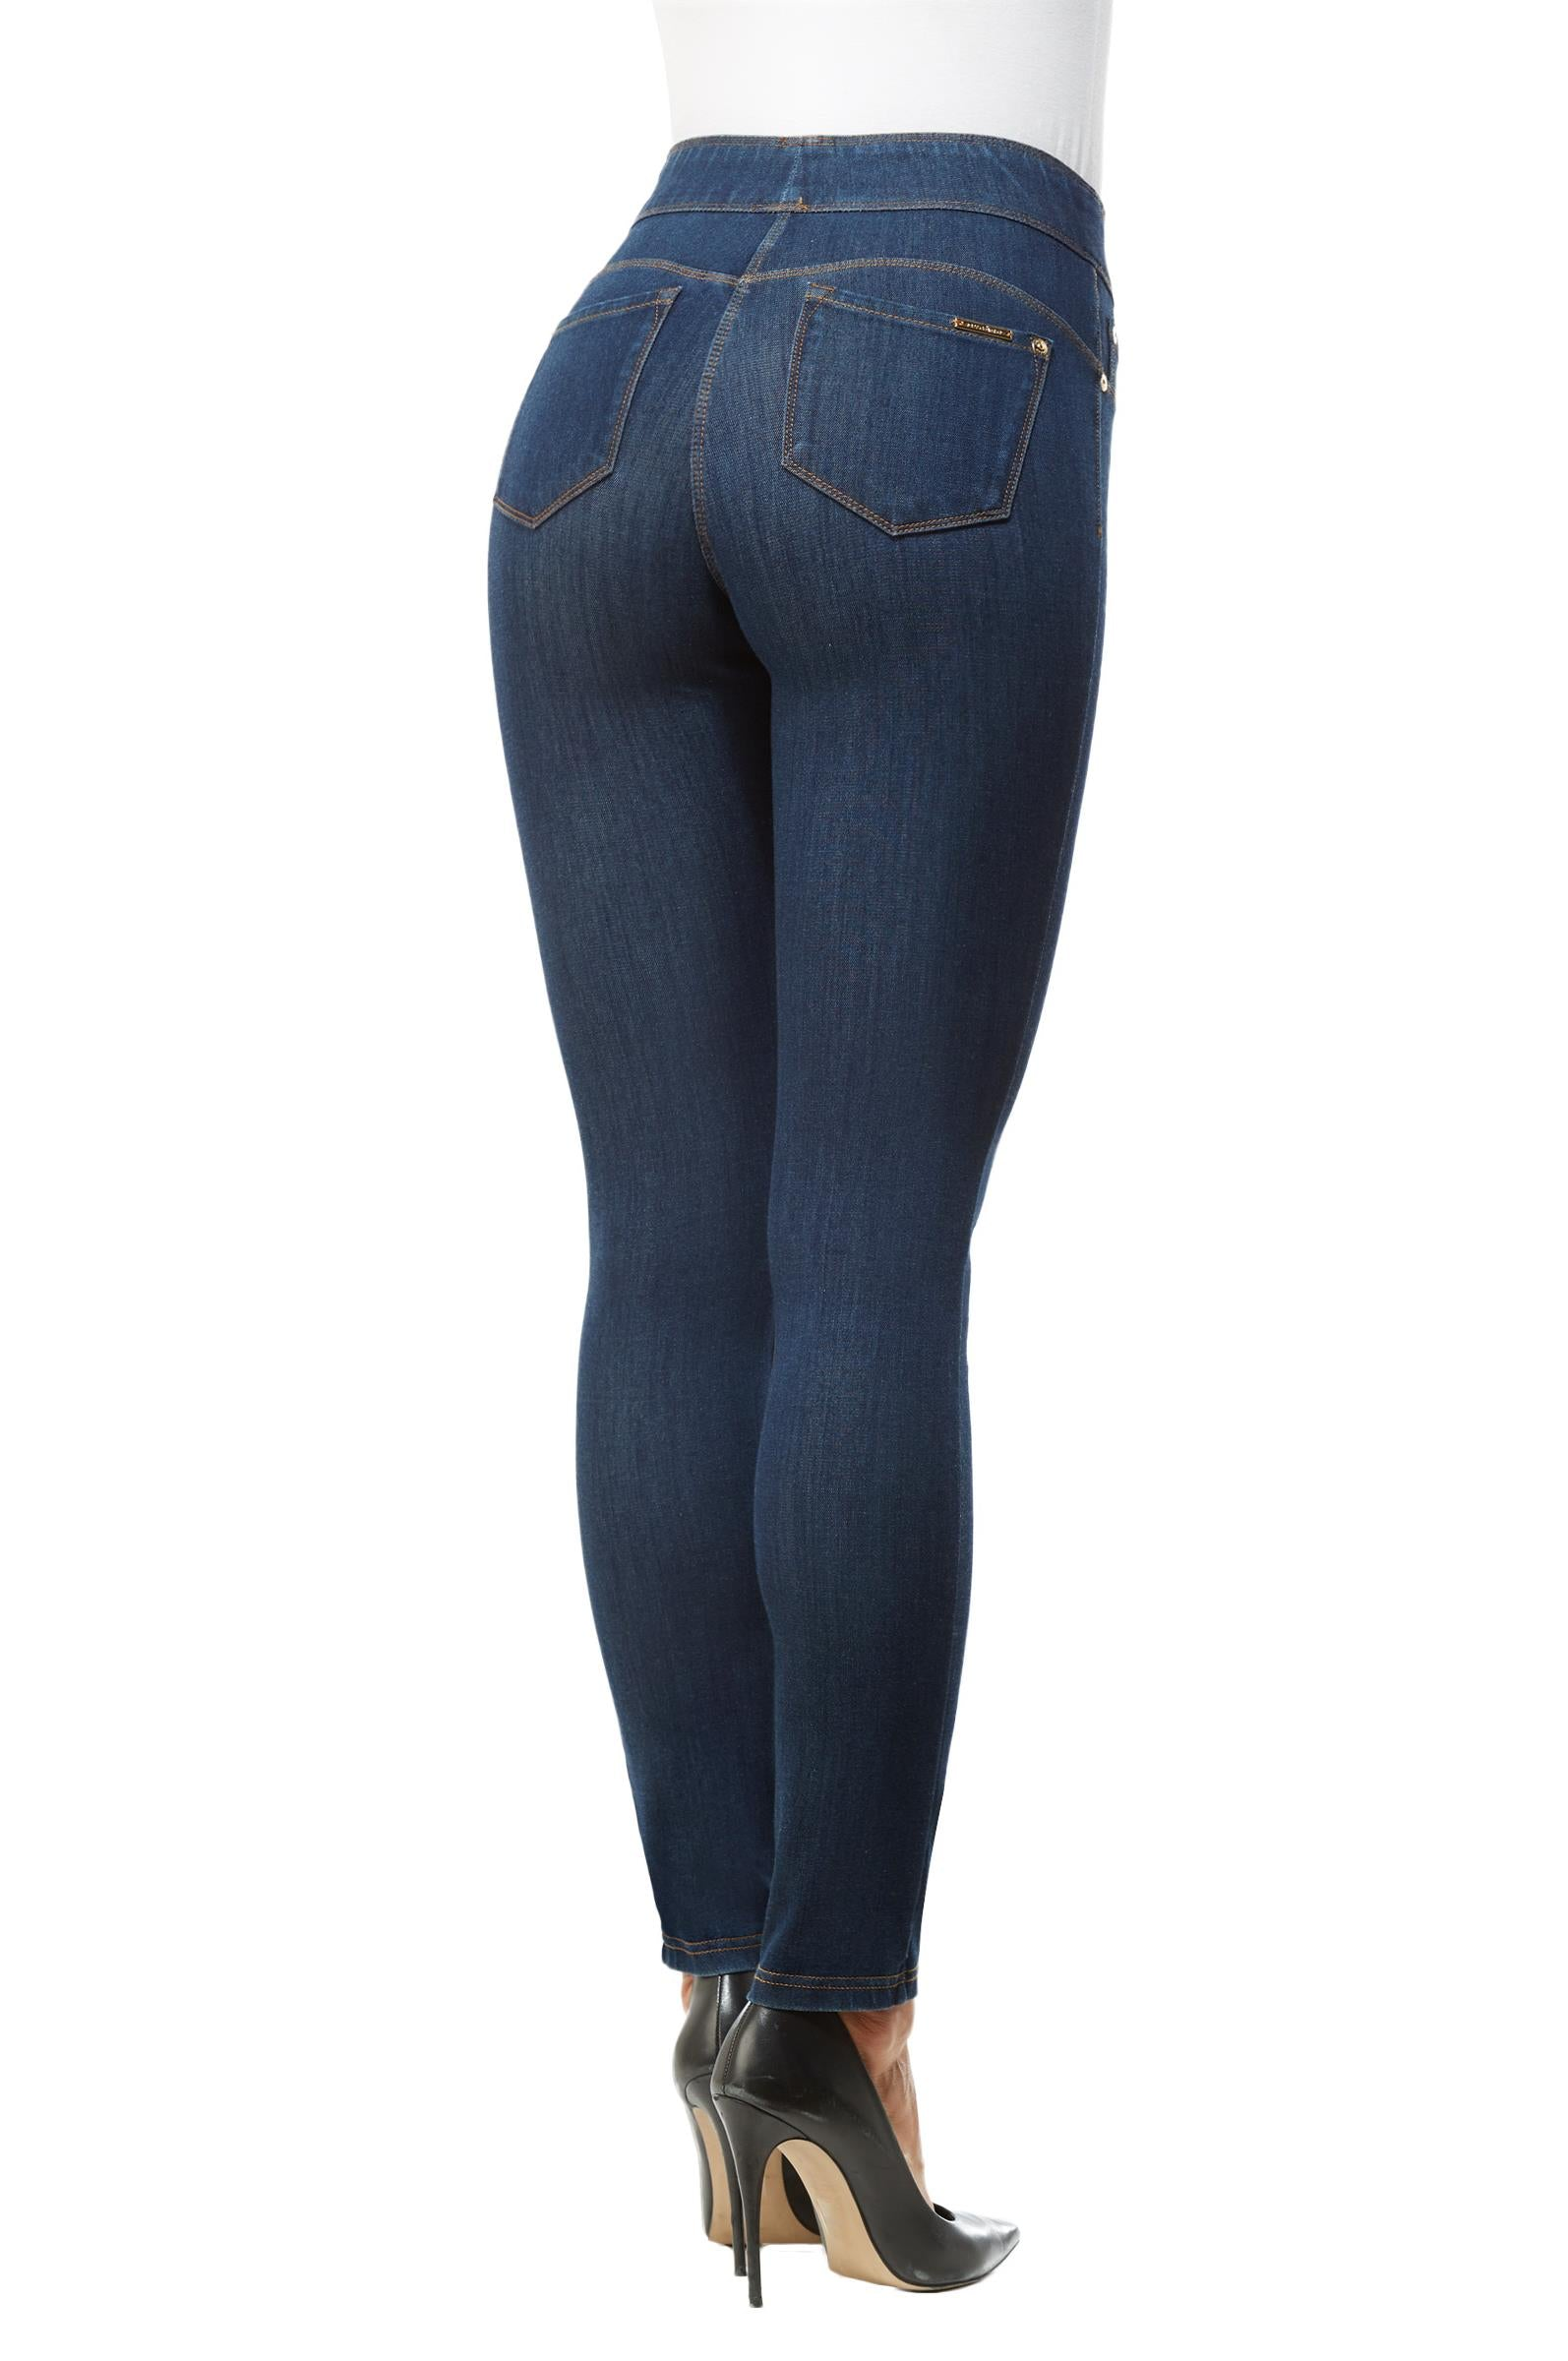 Back view woman wearing dark indigo wash jeggings with high heels